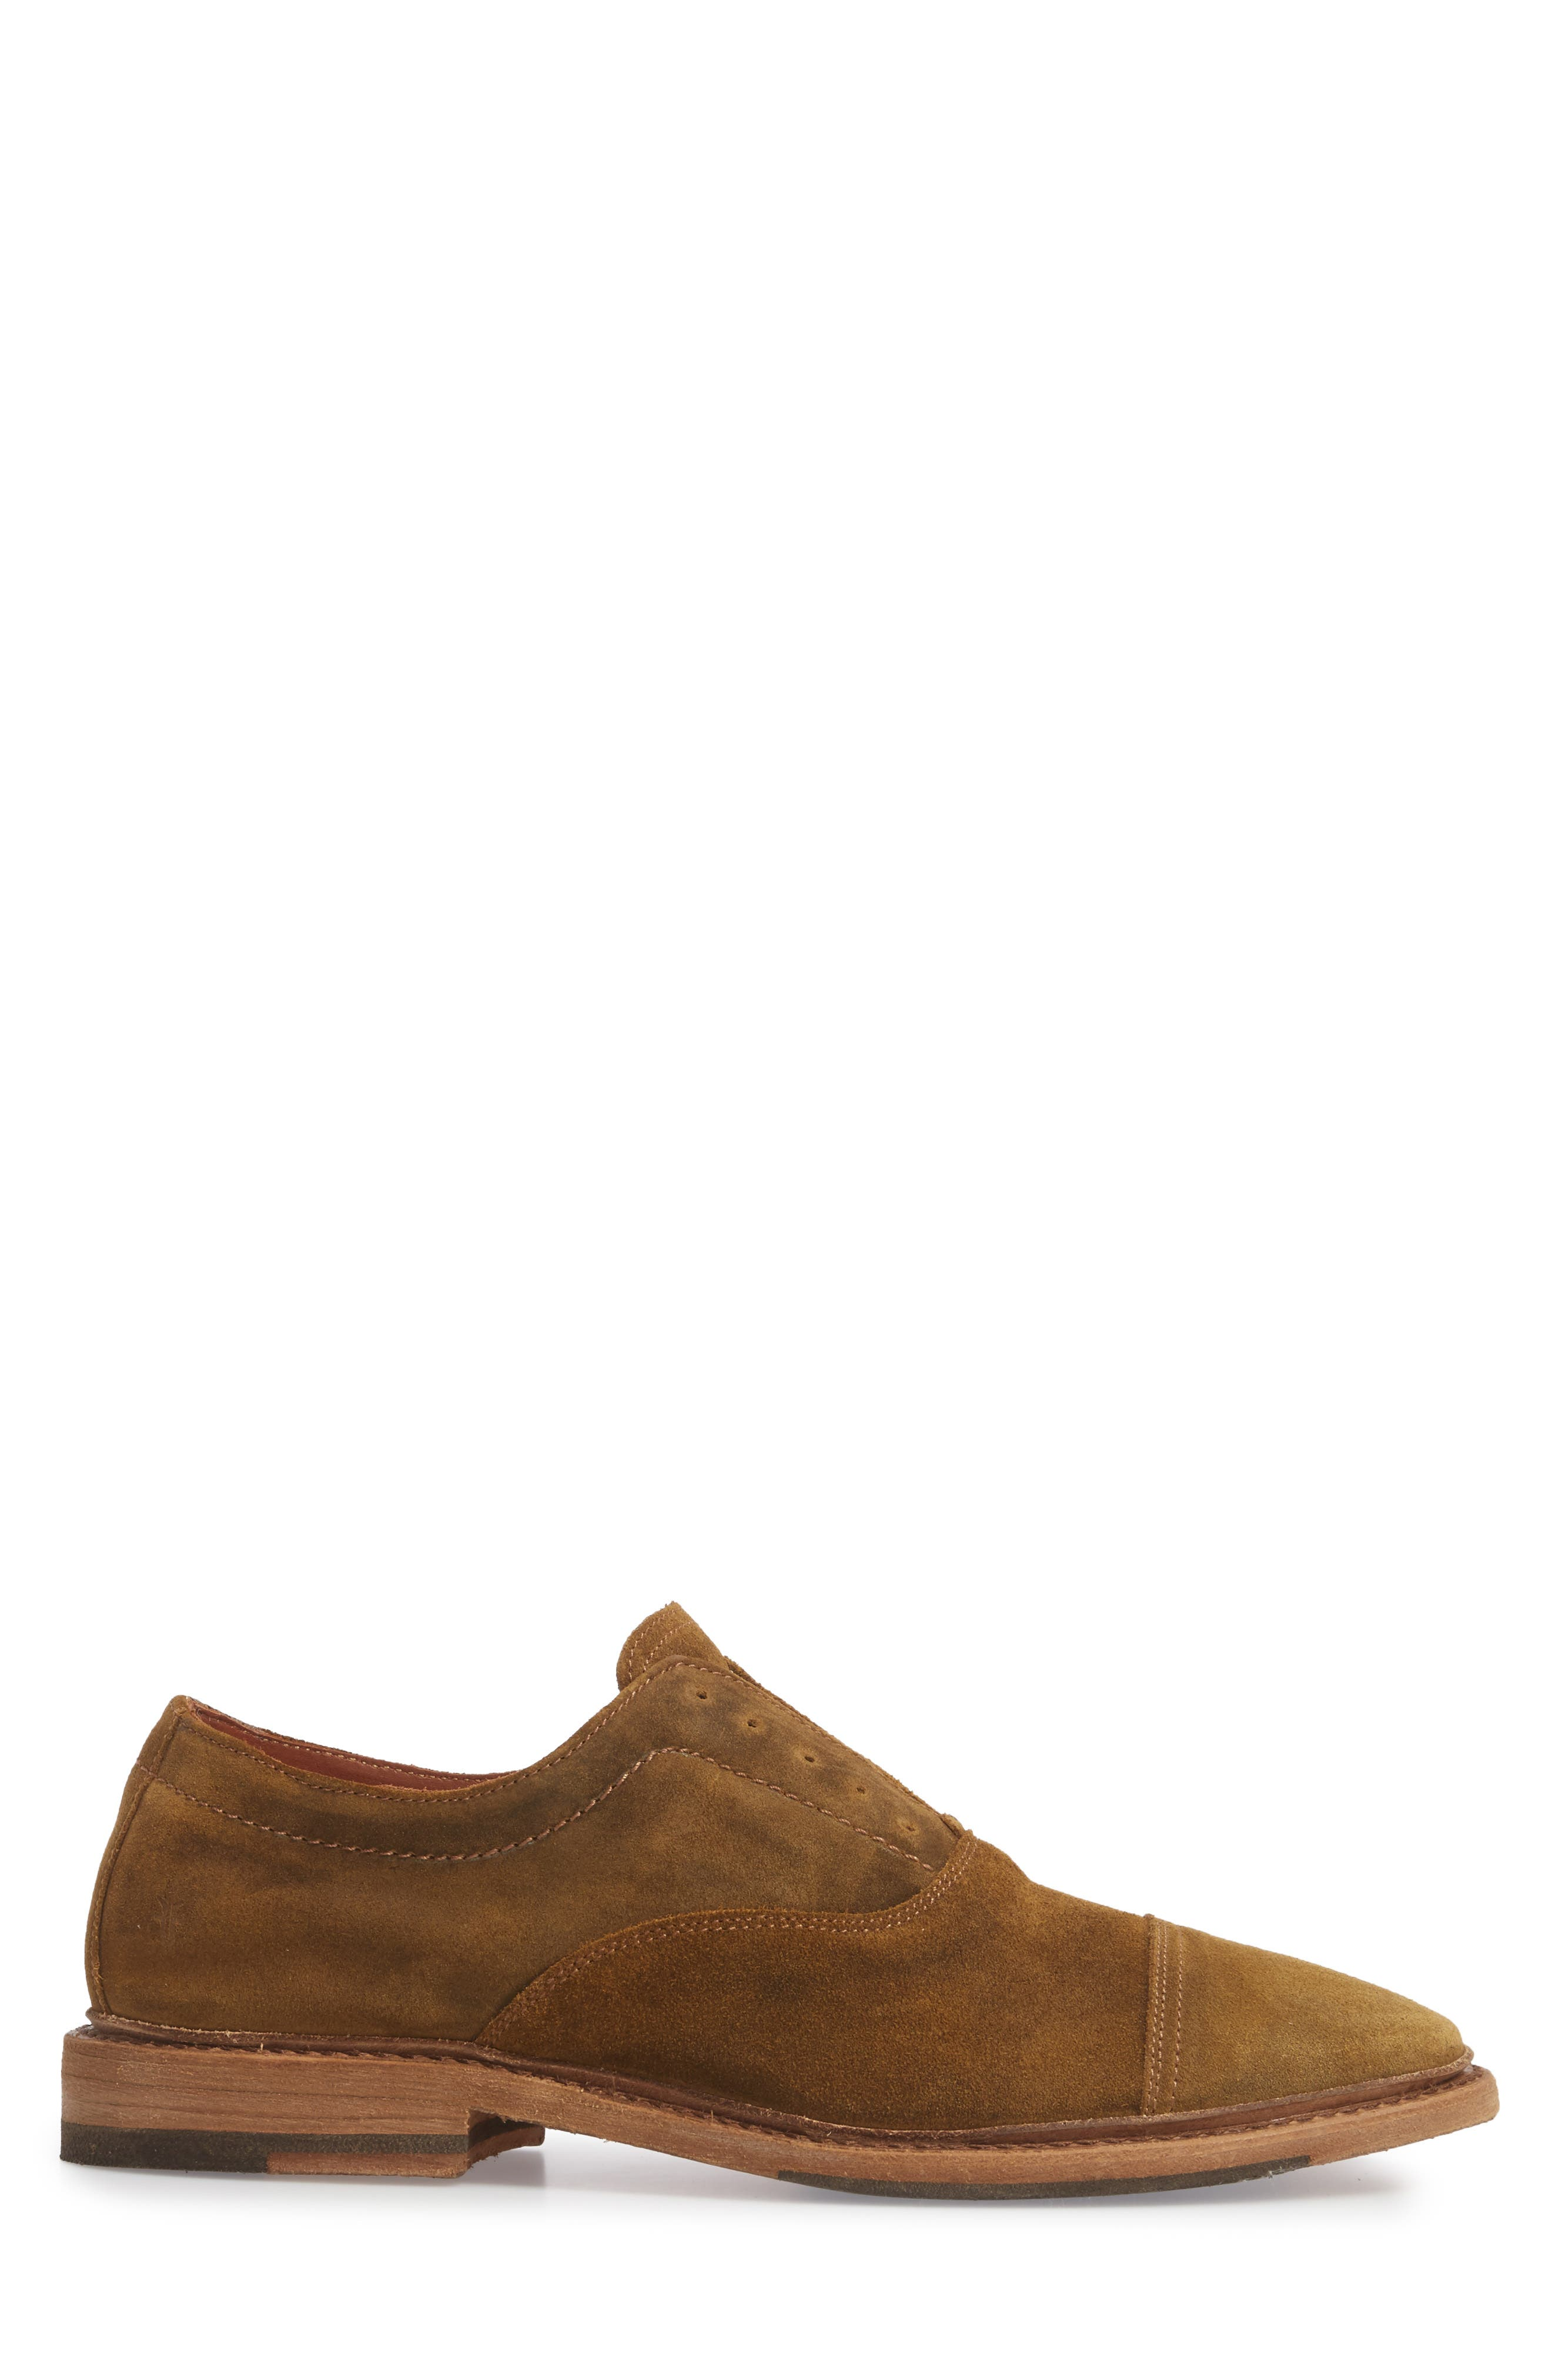 Paul Bal Cap Toe Oxford,                             Alternate thumbnail 7, color,